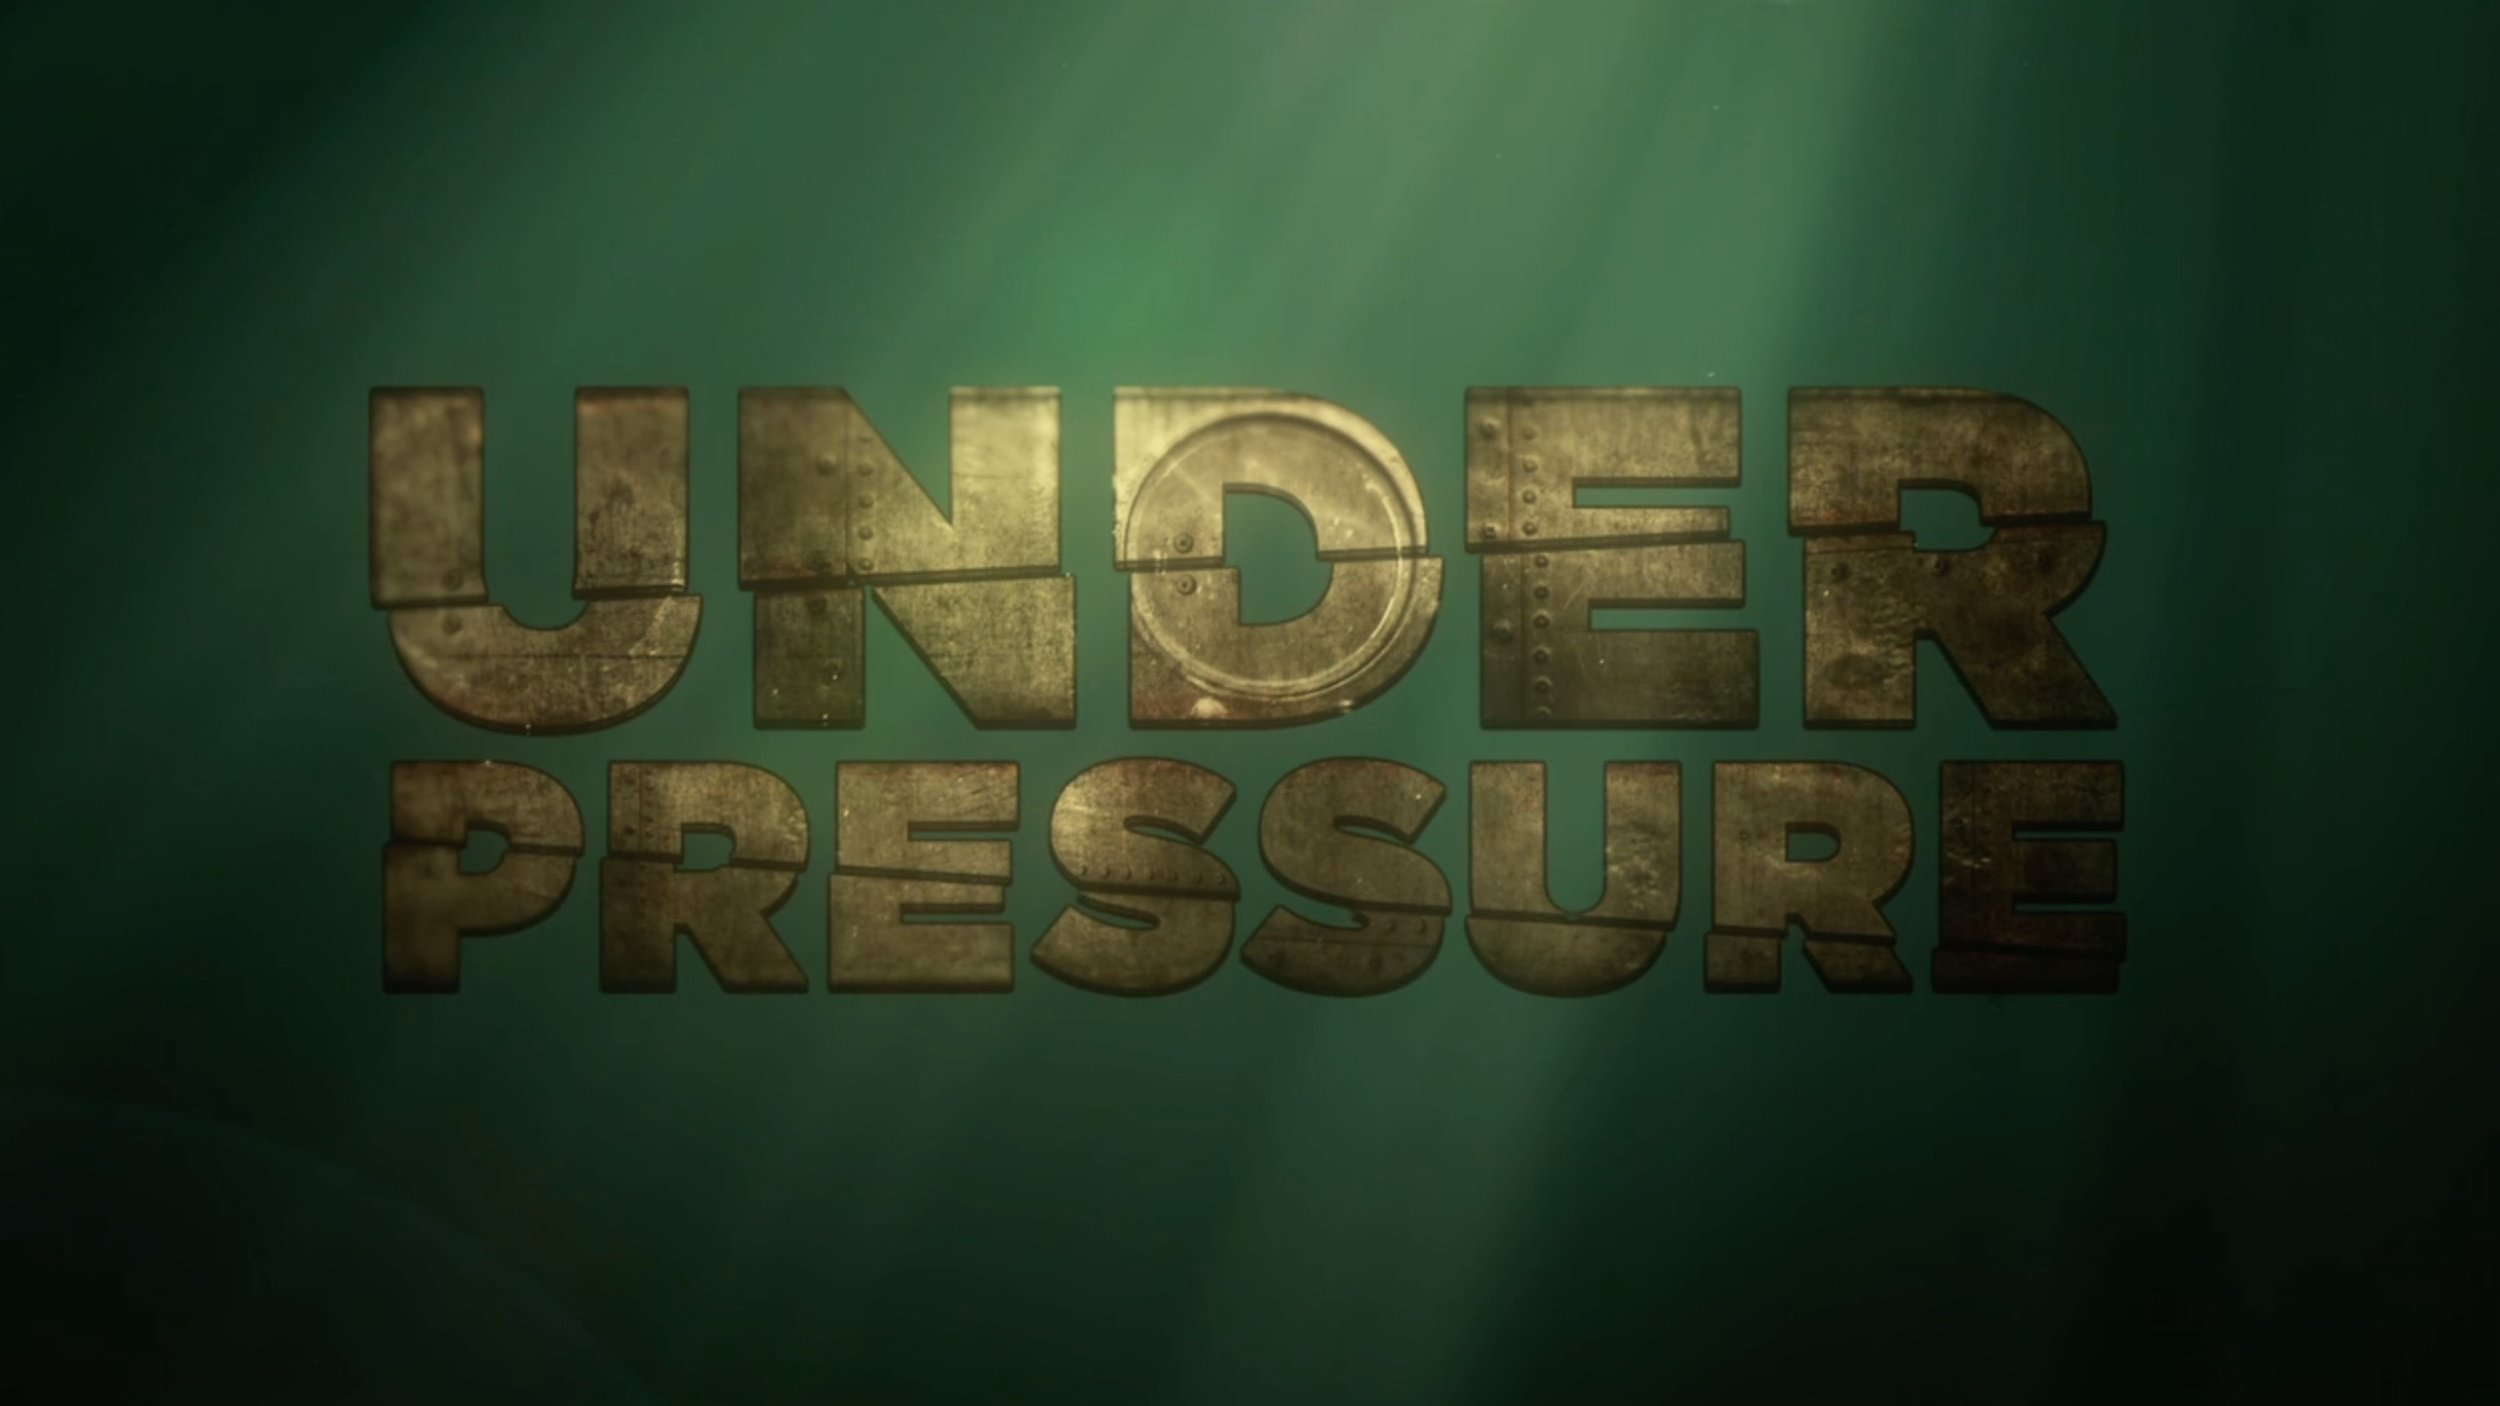 Under Pressure: Chino Prison Divers - A few years ago, they were hardened criminals serving time in a maximum security prison. Today, they are among the most competent Deep Sea Commercial Divers in the country, performing some of the most dangerous jobs on the planet.Developed by DunnMedia for Discovery Channel